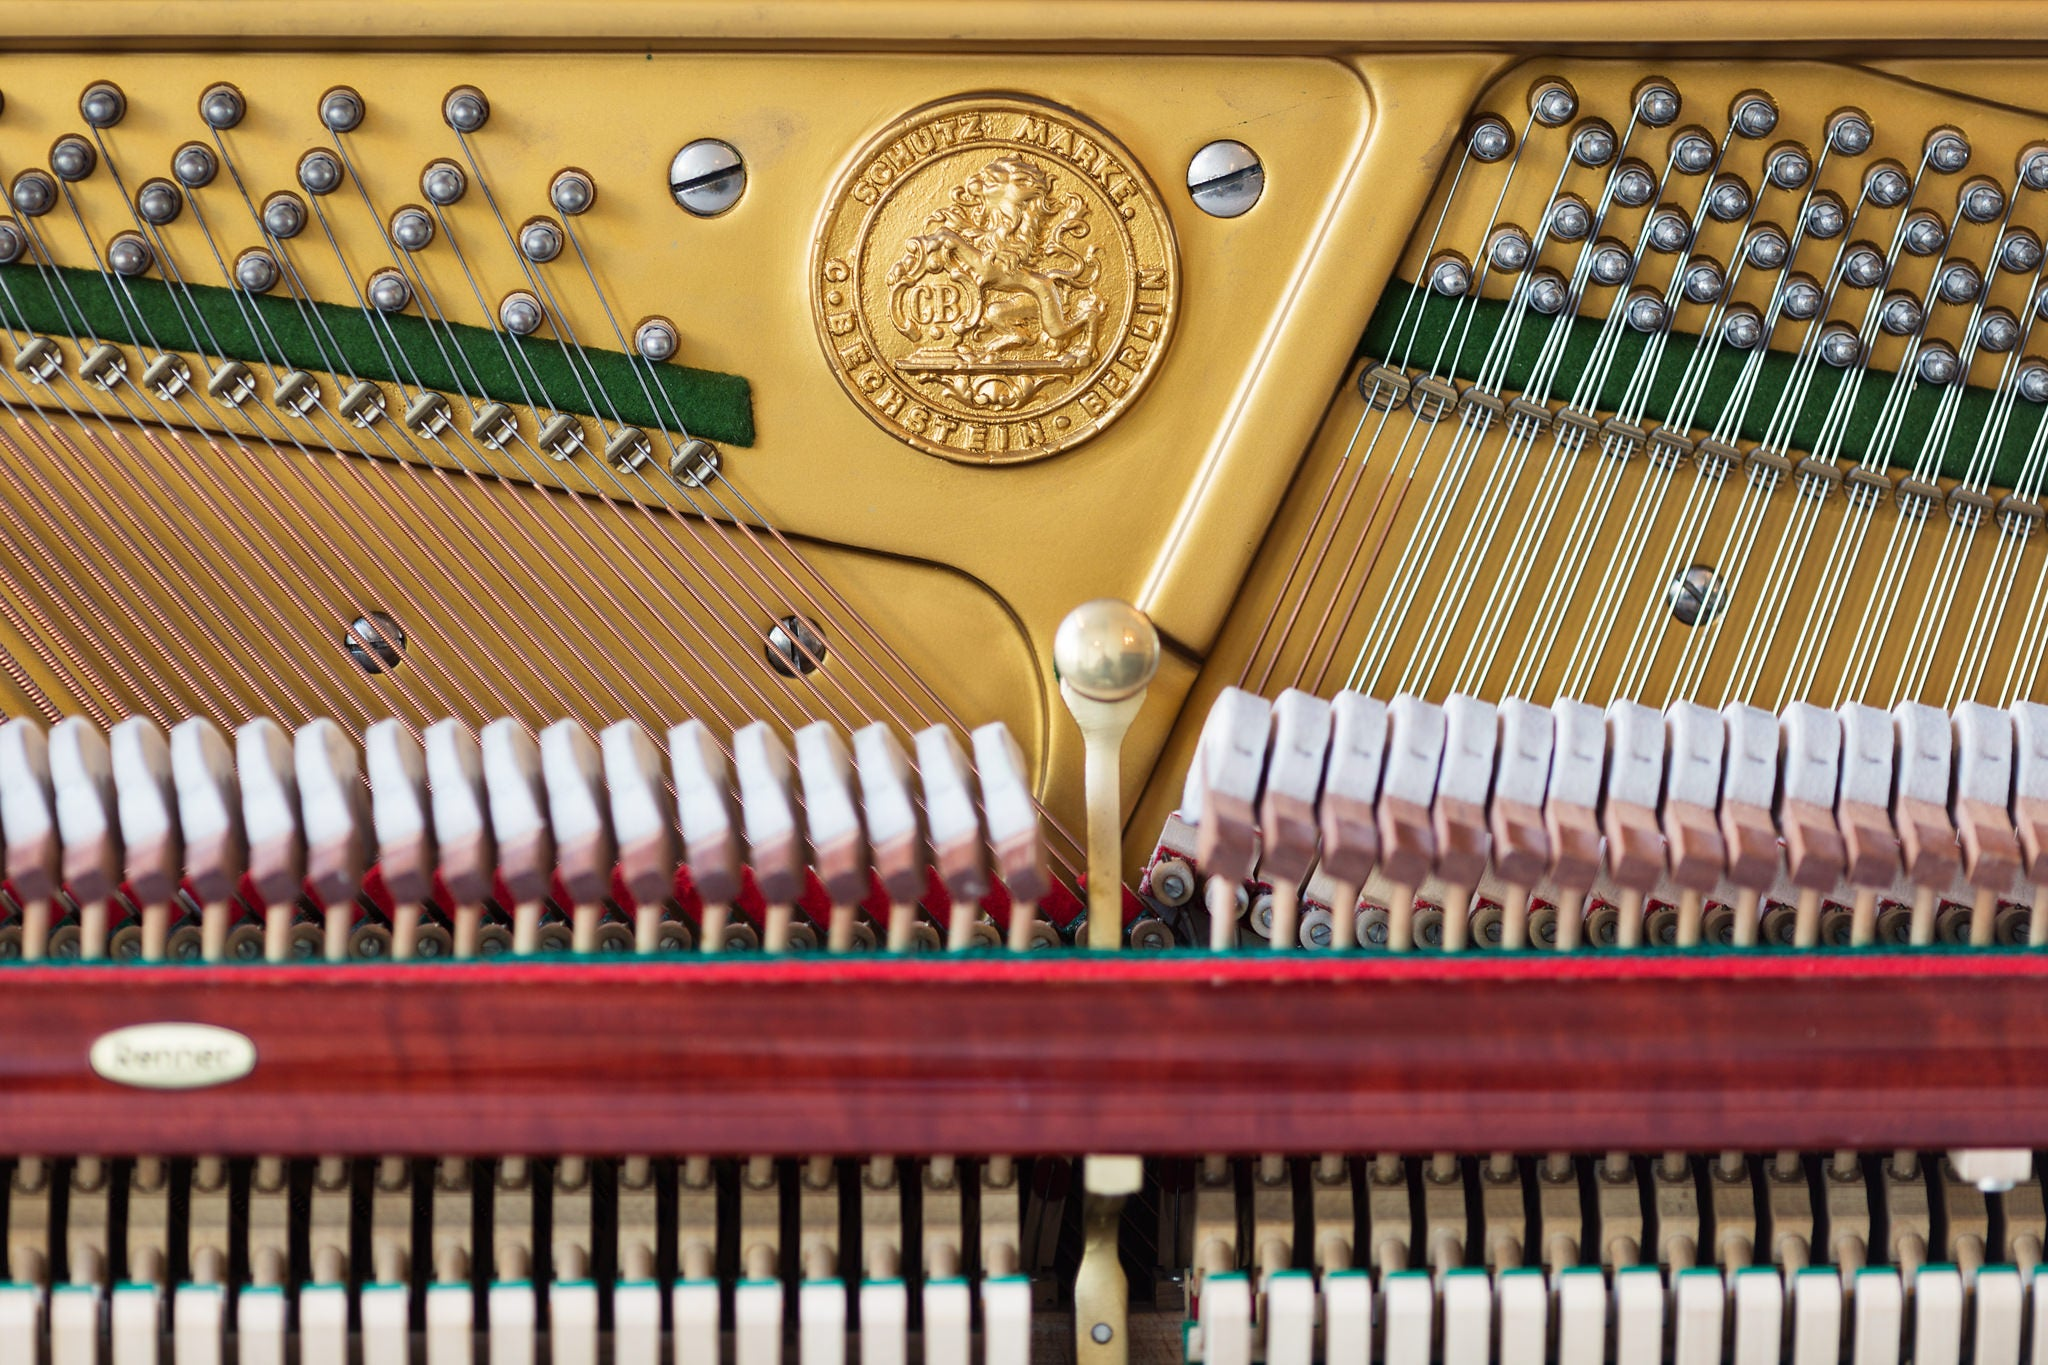 Bechstein Piano Technical Aspects